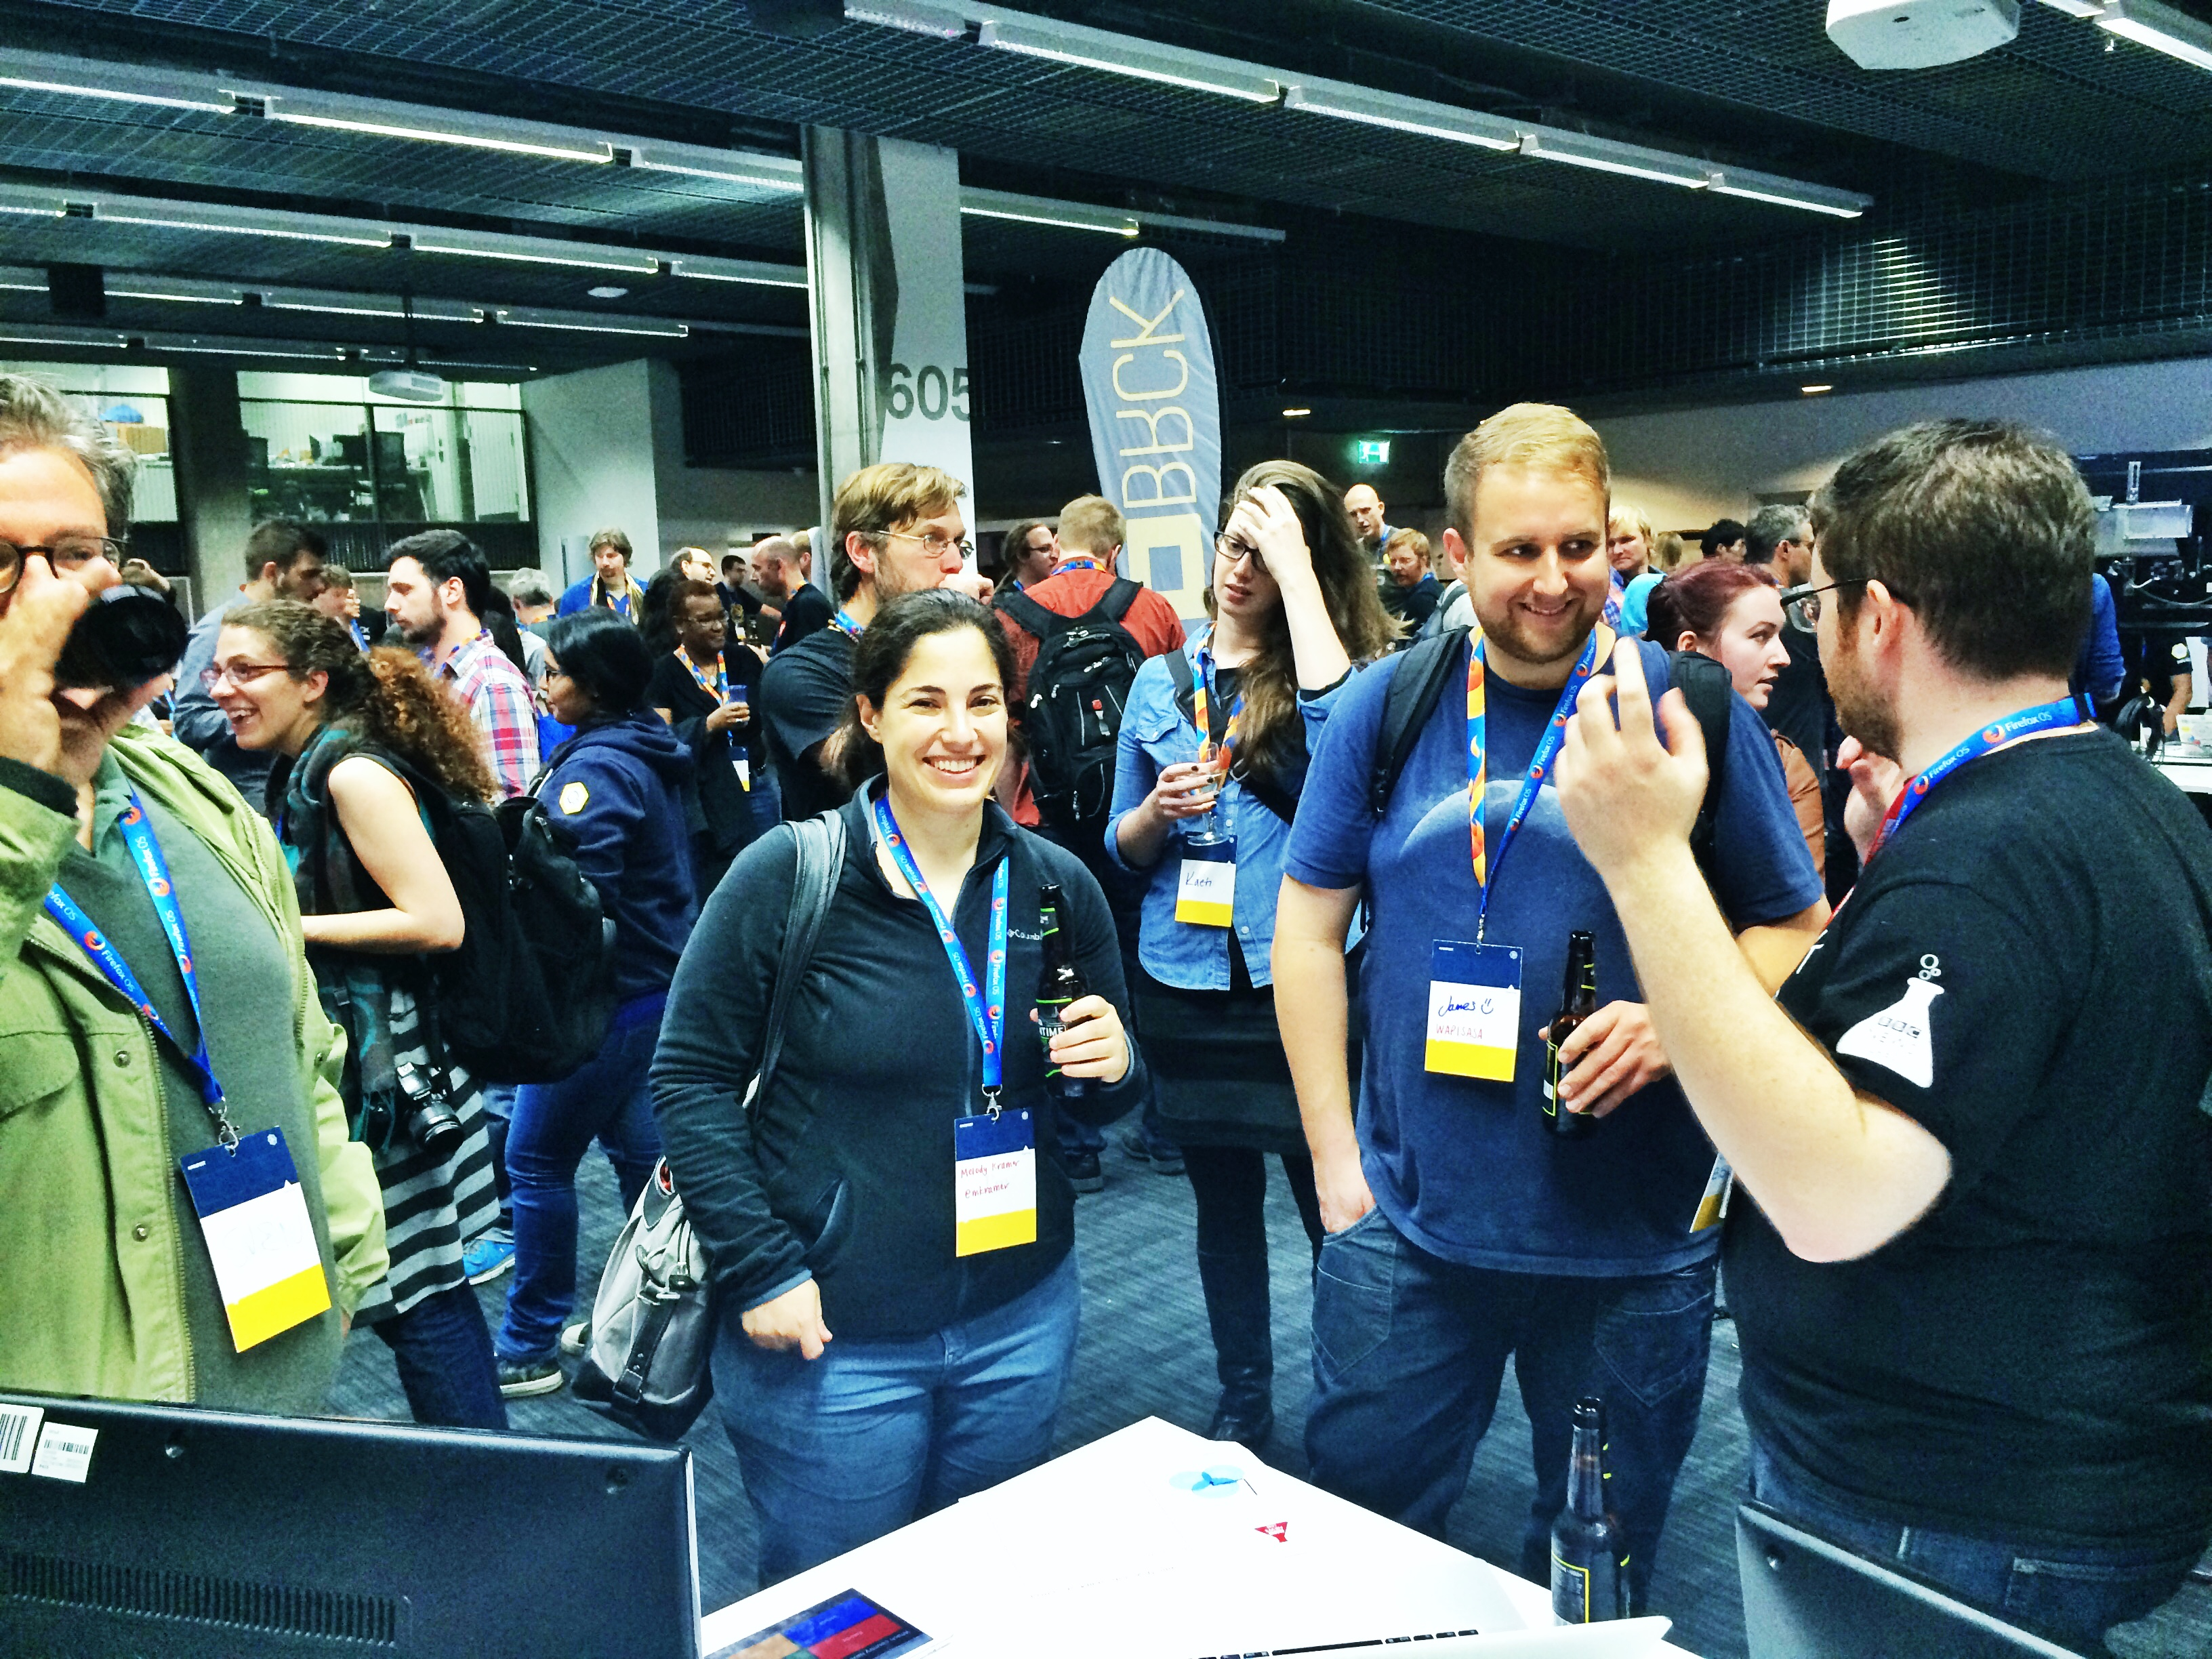 Melody Kramer visits the BBC News Labs stand at Mozfest 2014 Science Fair